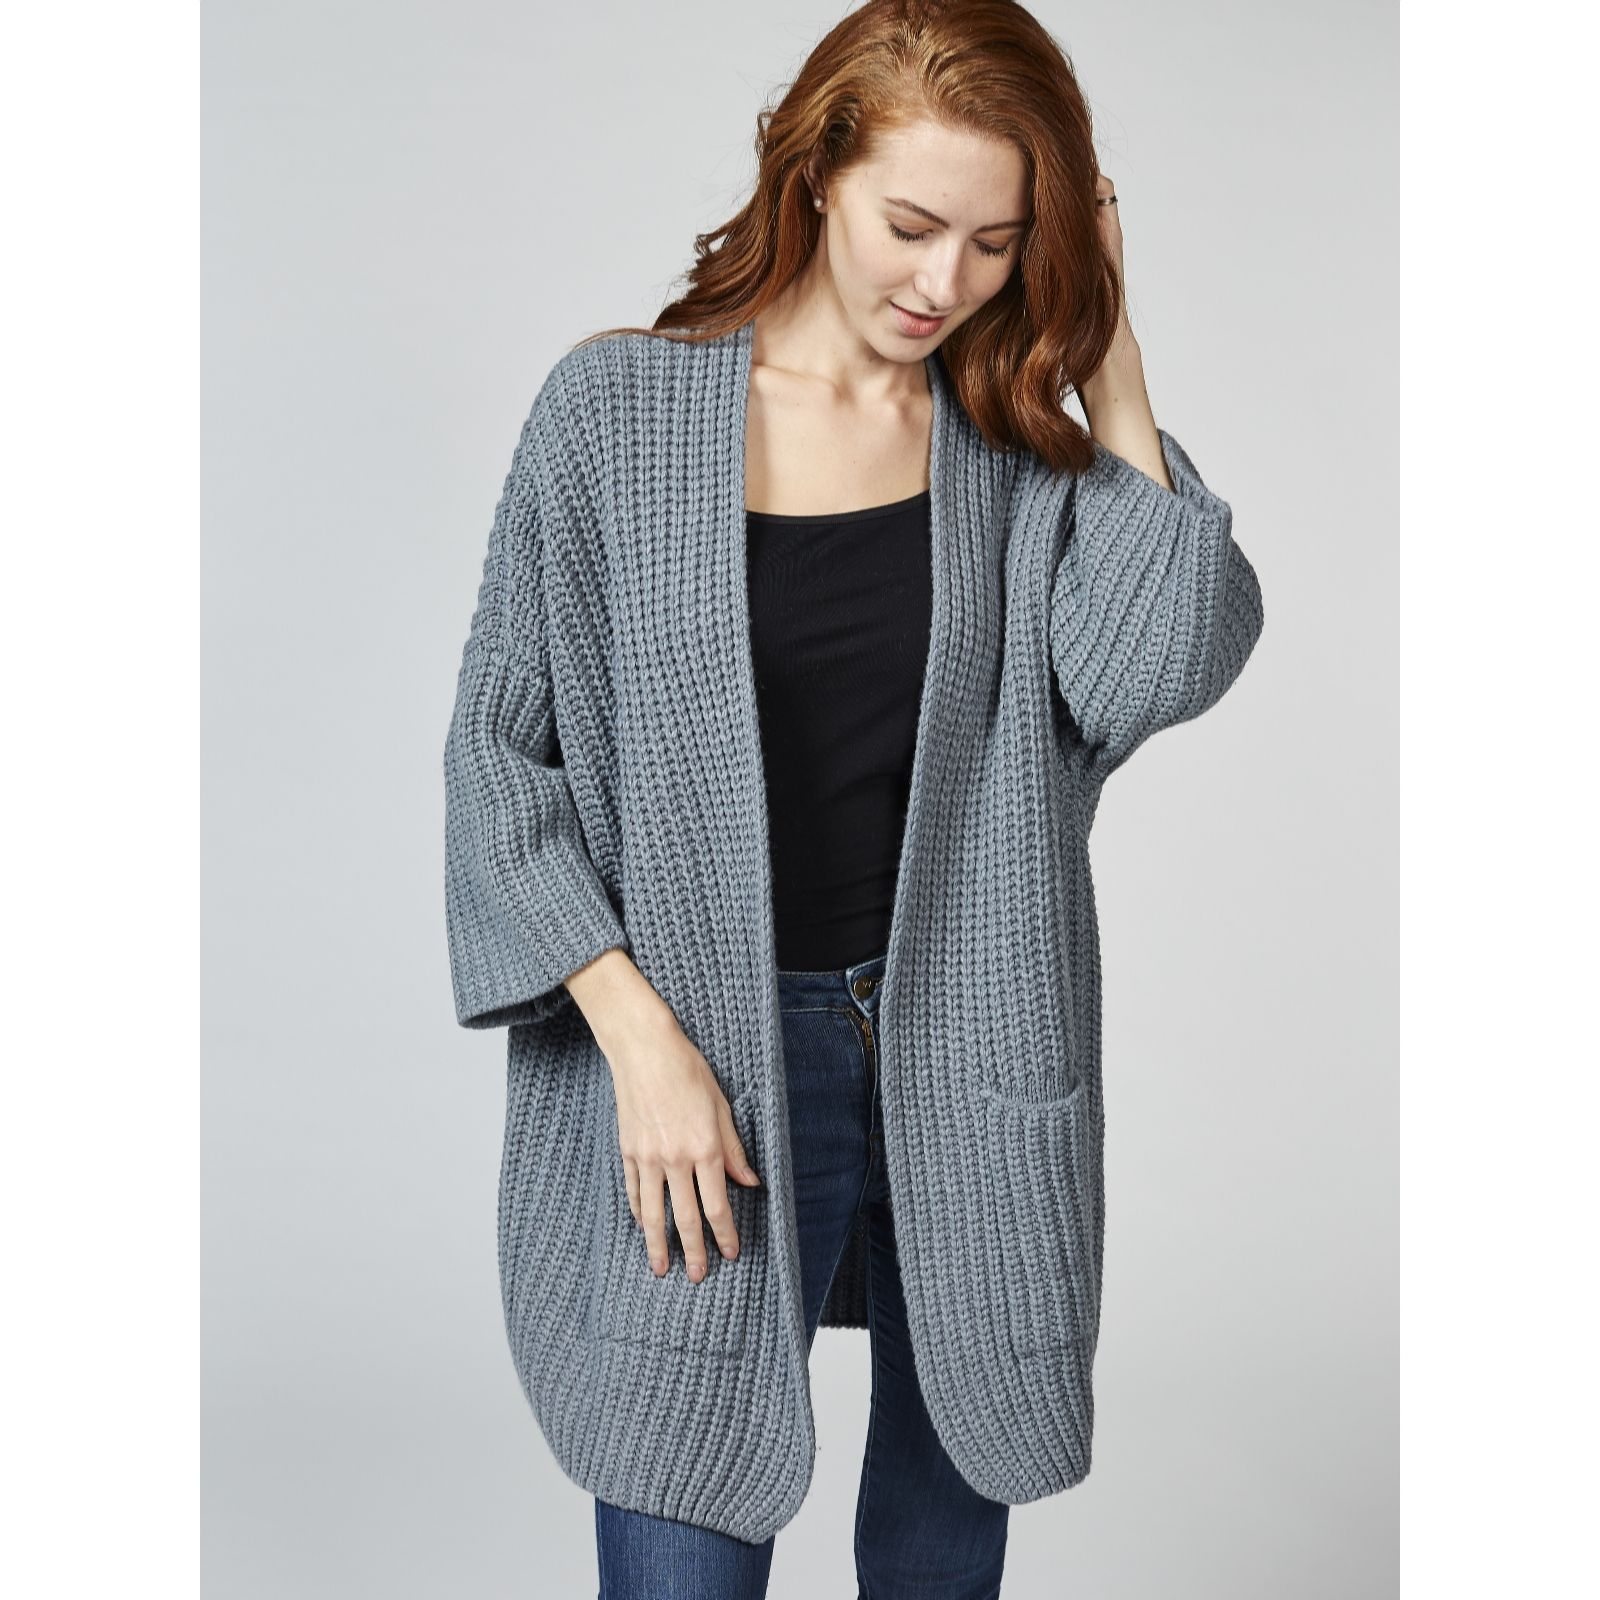 Dressage by Paul Costelloe Wool Blend Chunky Knit Cardigan - QVC UK